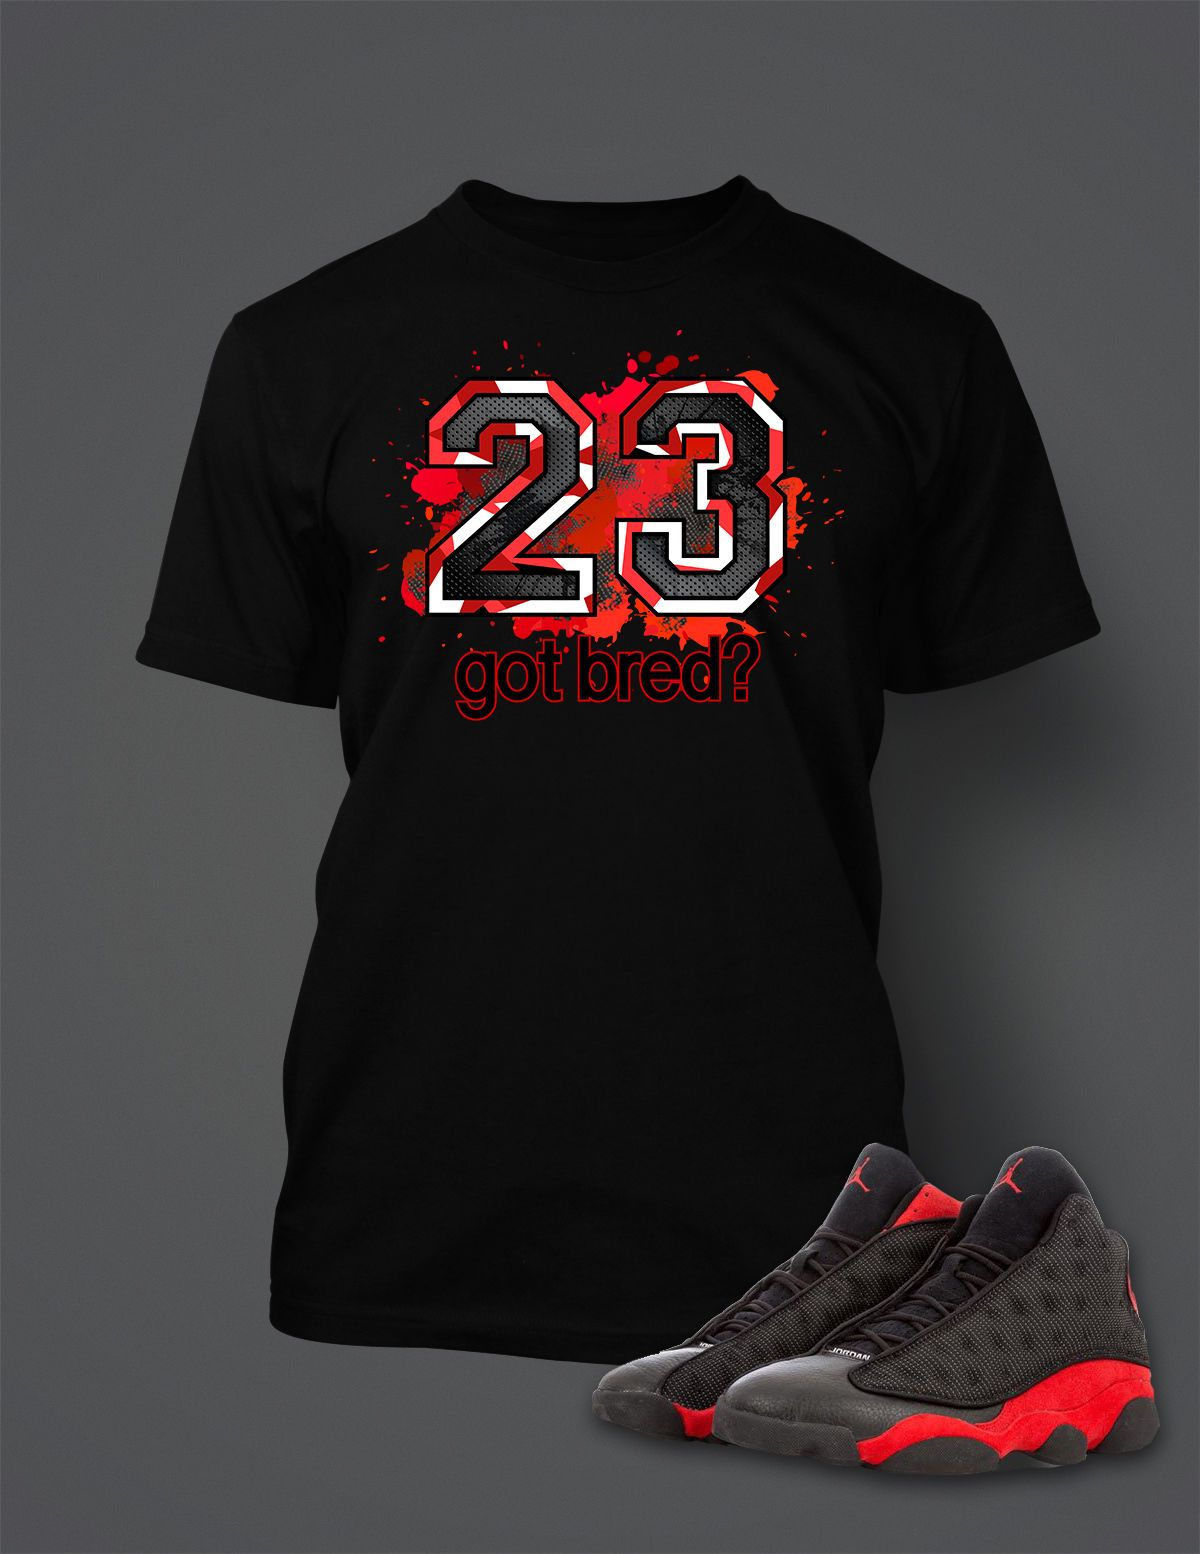 3b6f26c5 23 Got Bred Tee Shirt to Match Retro Air Jordan 13 Shoe Mens Graphic T Shirt